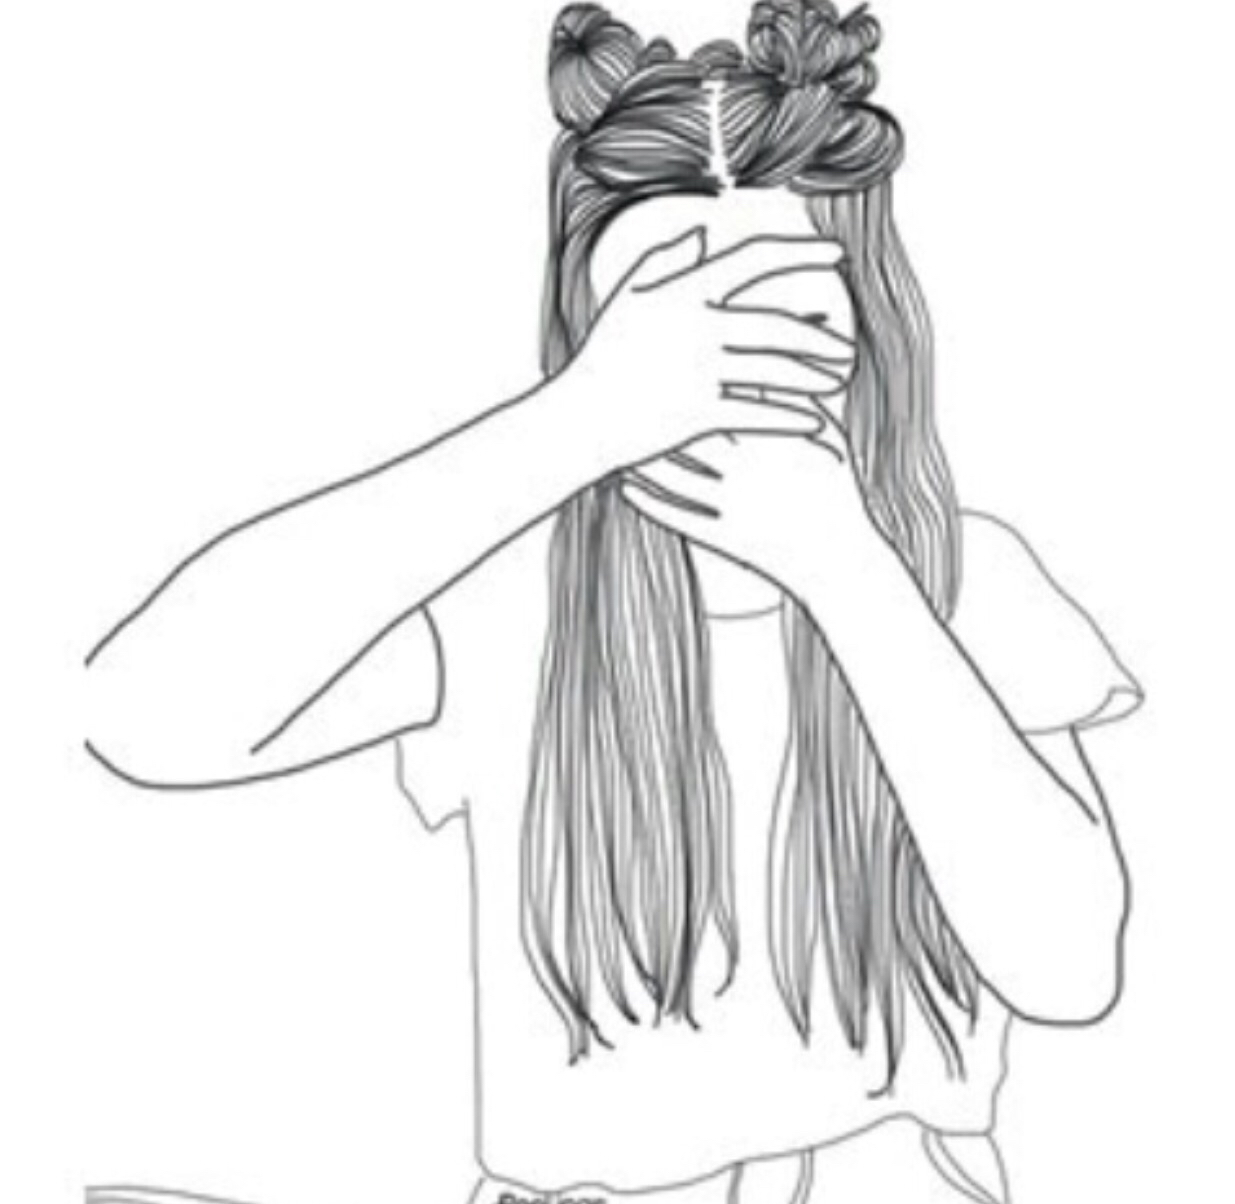 1235x1204 Pin By Zeynep Akdeniz On Drawings Outlines And Draw